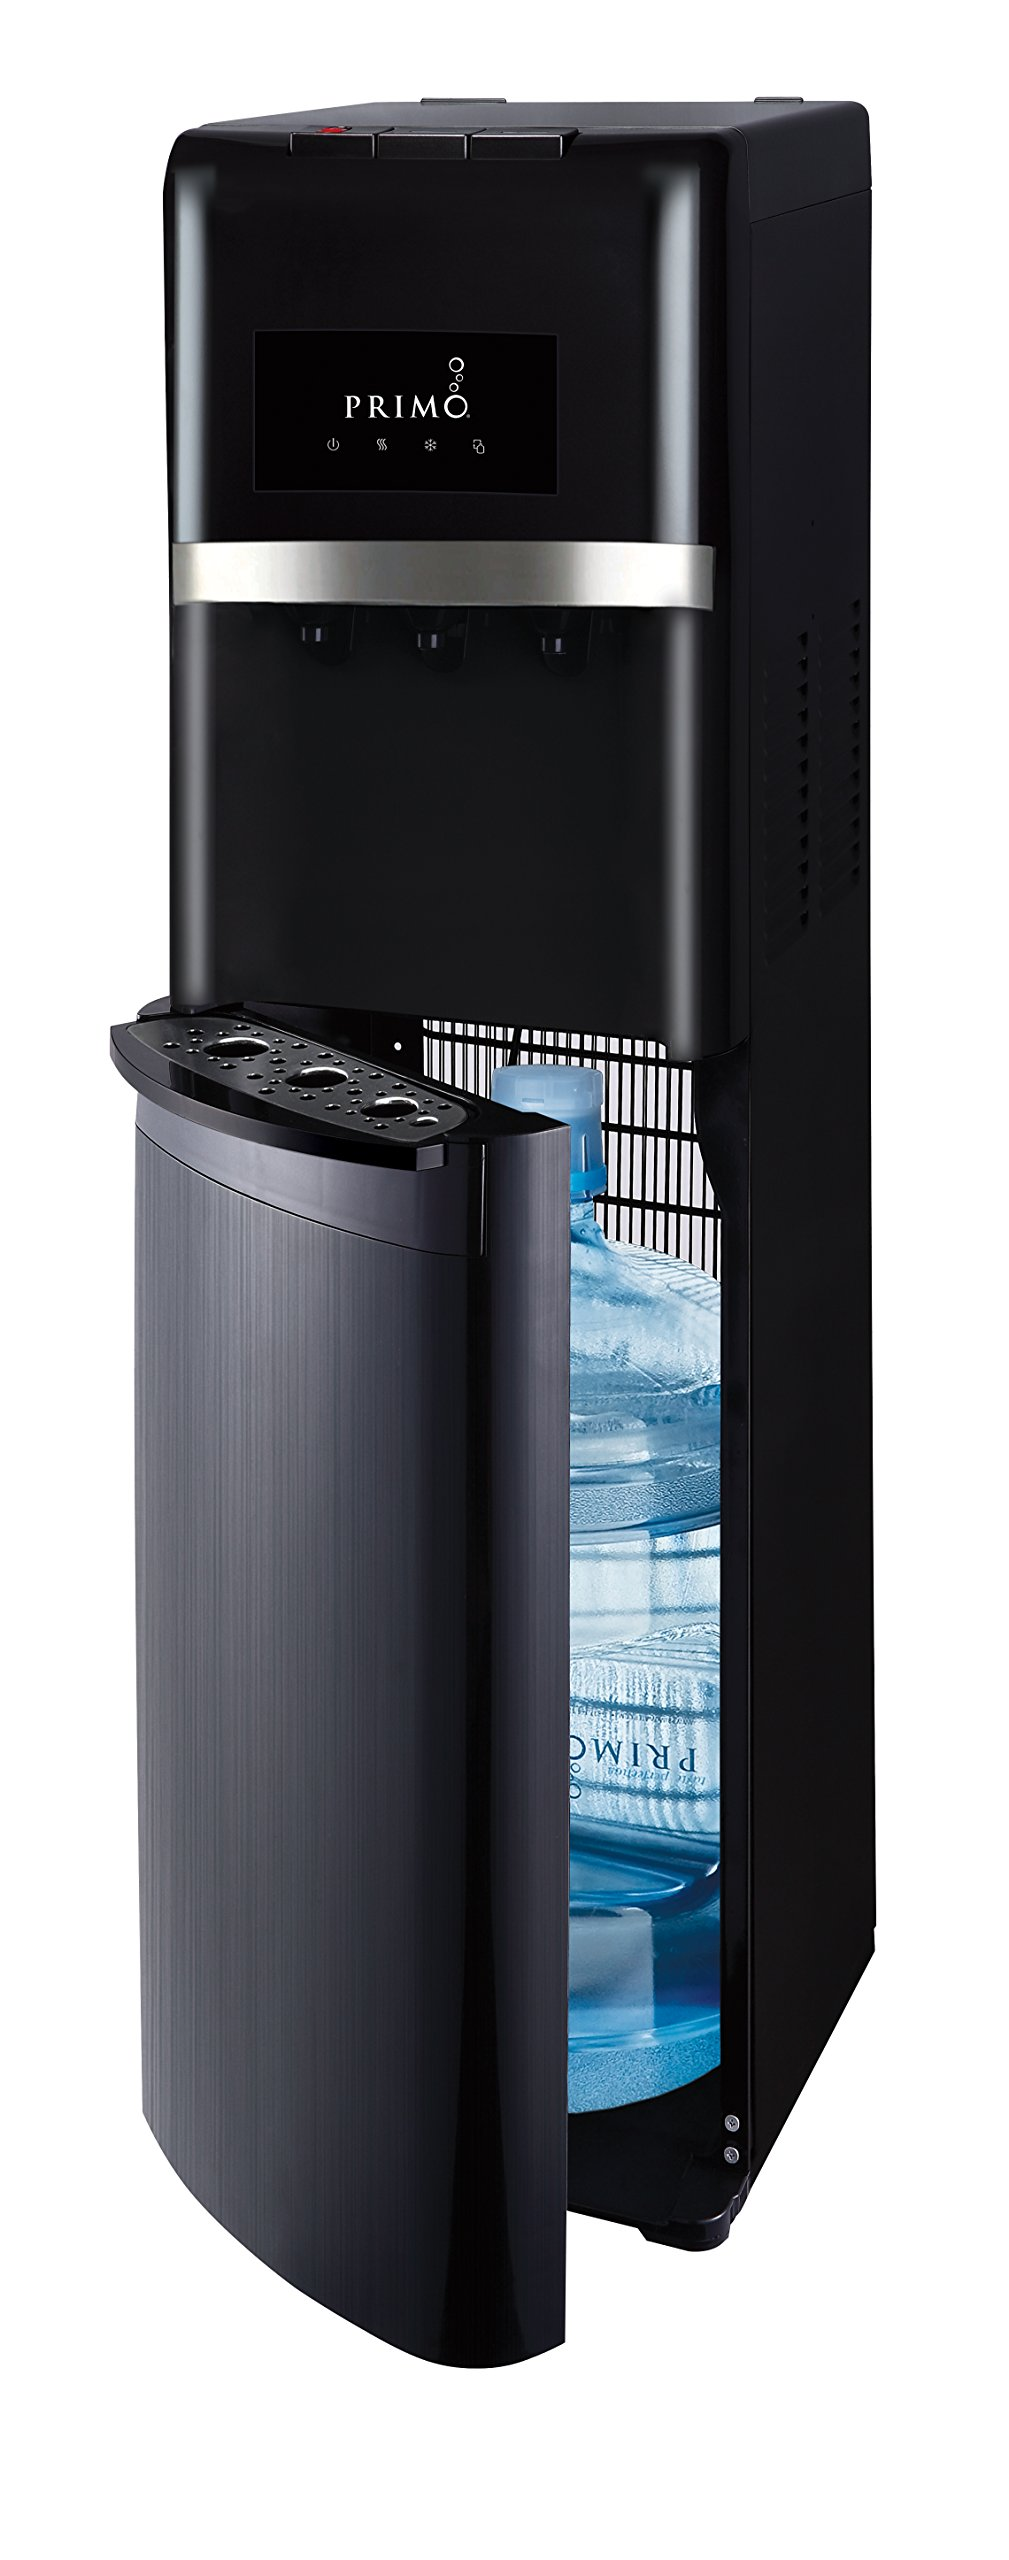 Primo Bottom Loading Water Cooler - 3 Temperature Settings, Hot, Cold, Cool - Energy Star Rated Water Dispenser w/ Child-Resistant Safety Feature Supports 3 or 5 Gallon Water Jugs [Black with Black Stainless] by Primo (Image #1)